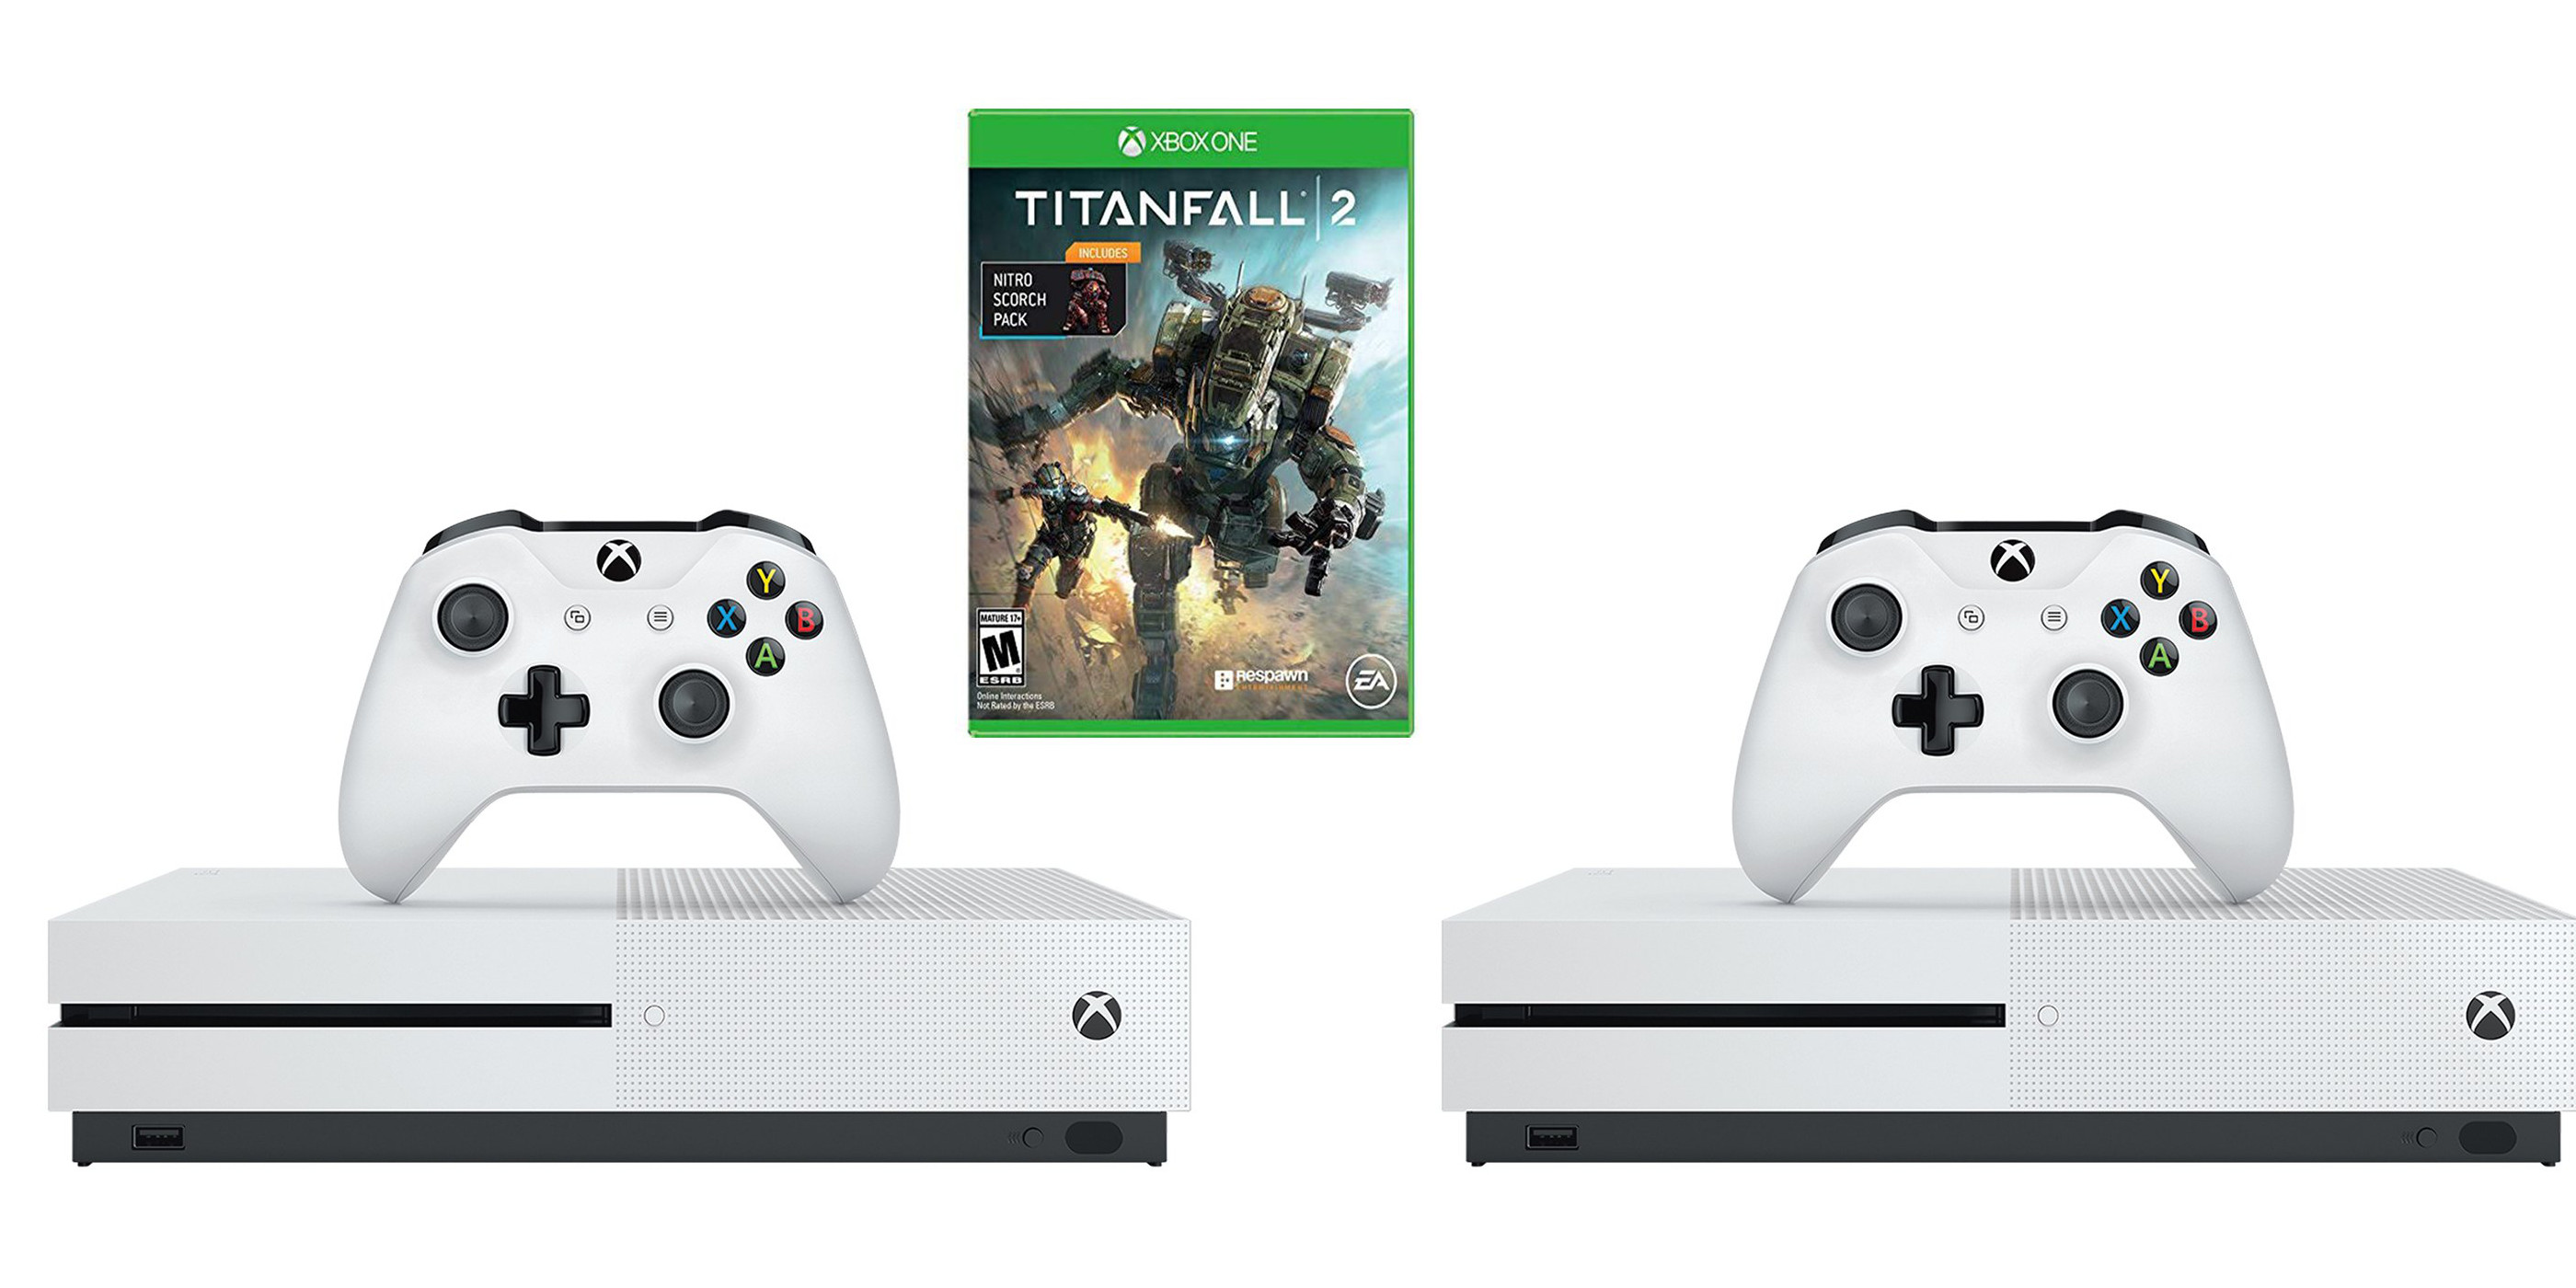 Xbox One S/X Console Bundles up to $200 off: Titanfall 2, NBA 2K19, PUBG, more